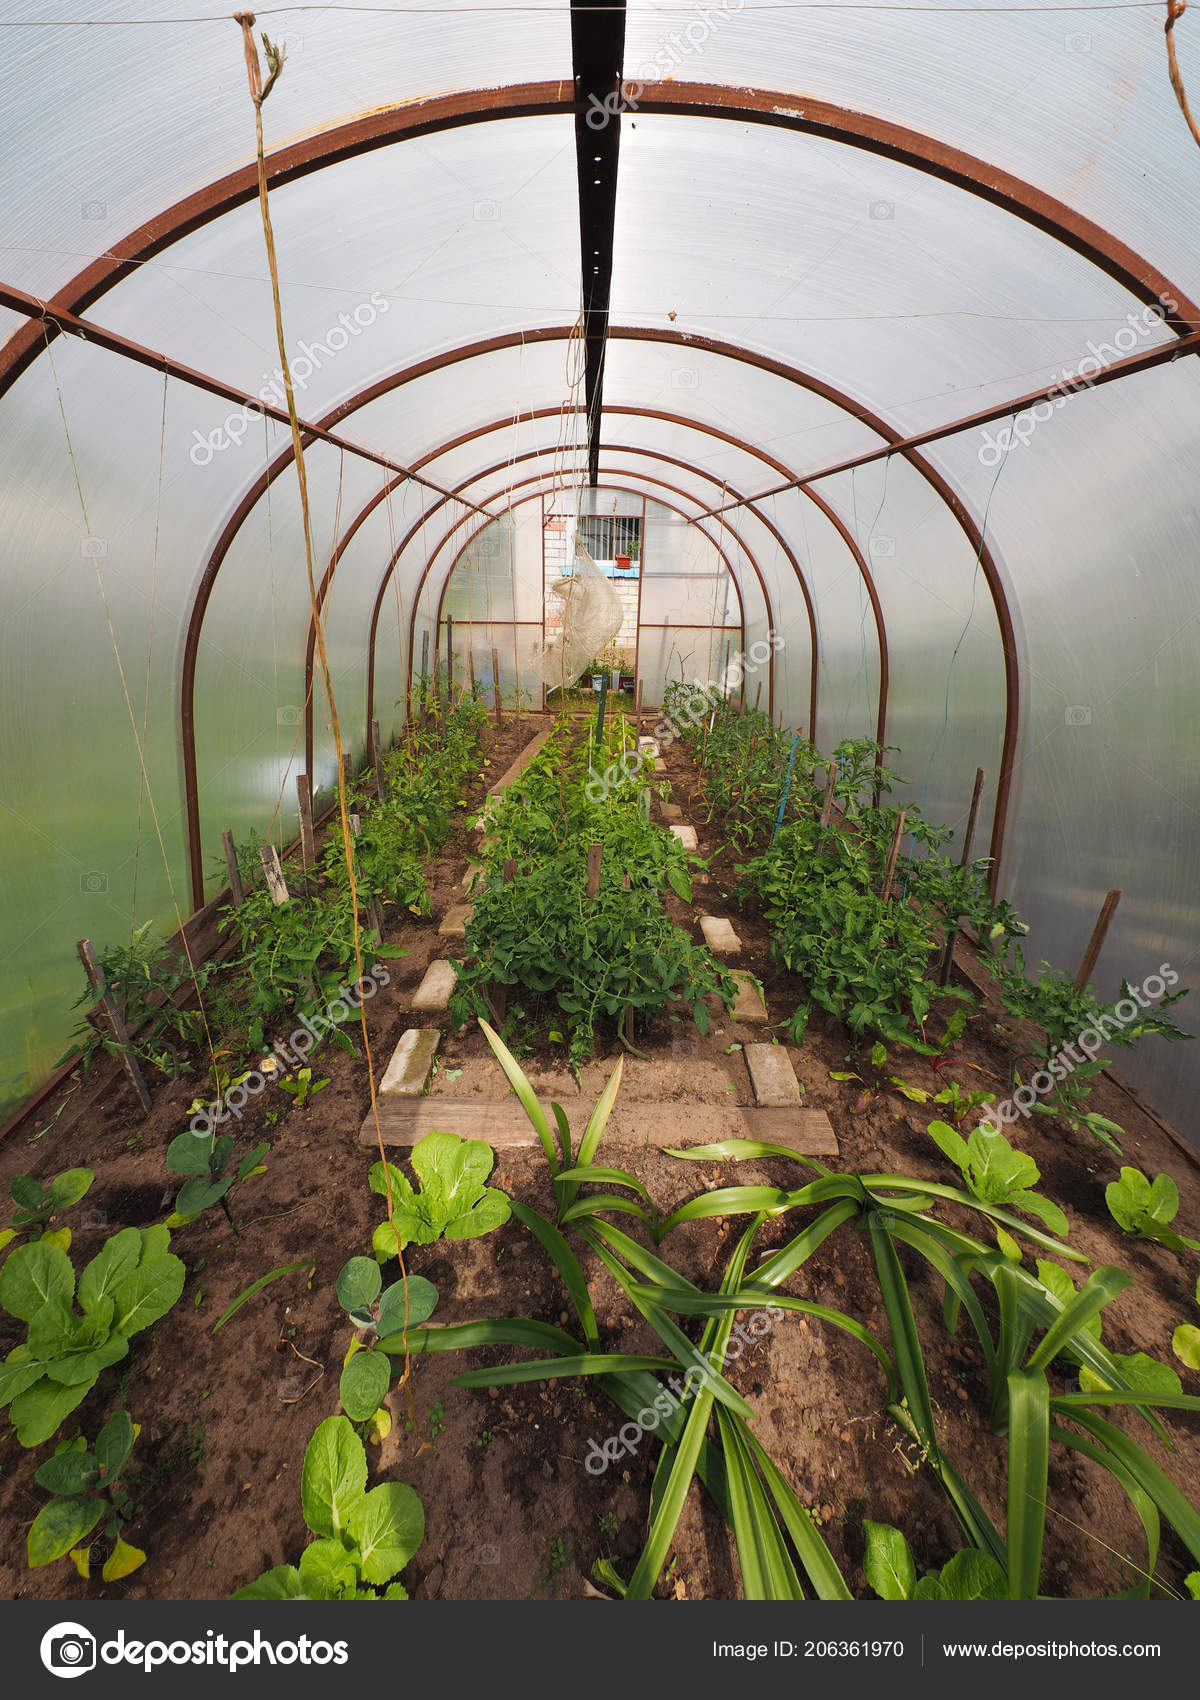 Enjoyable Greenhouse Vegetables Summer Stock Photo C Enskanto 206361970 Home Interior And Landscaping Dextoversignezvosmurscom